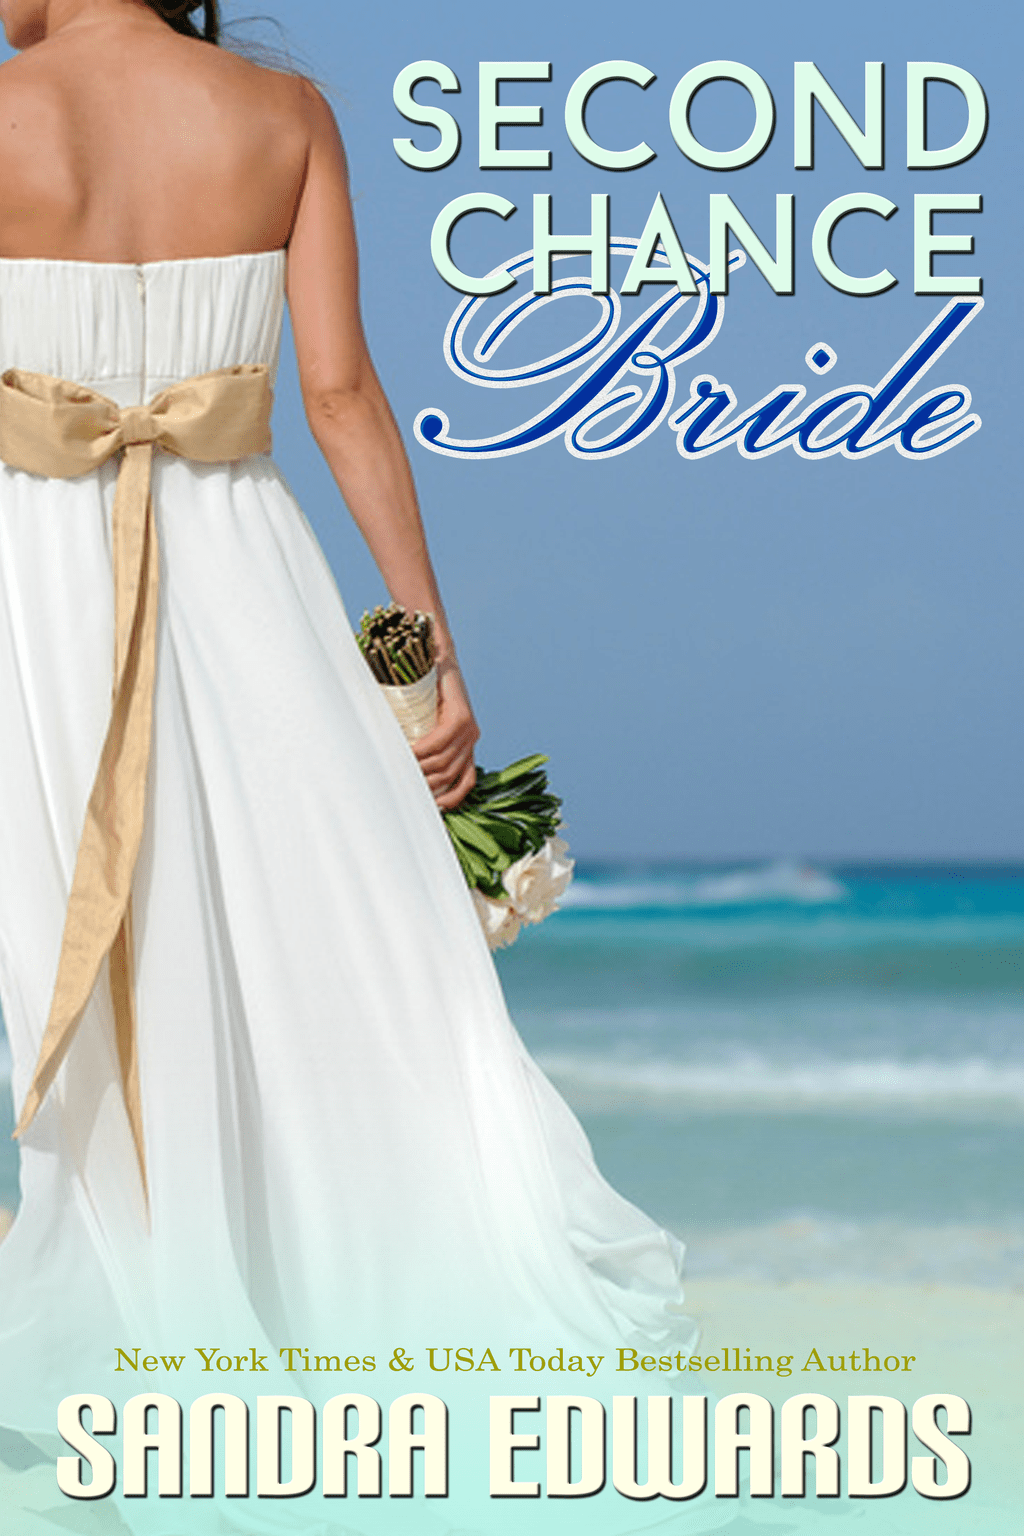 Second Chance Bride by Sandra Edwards #bookblast #giveaway